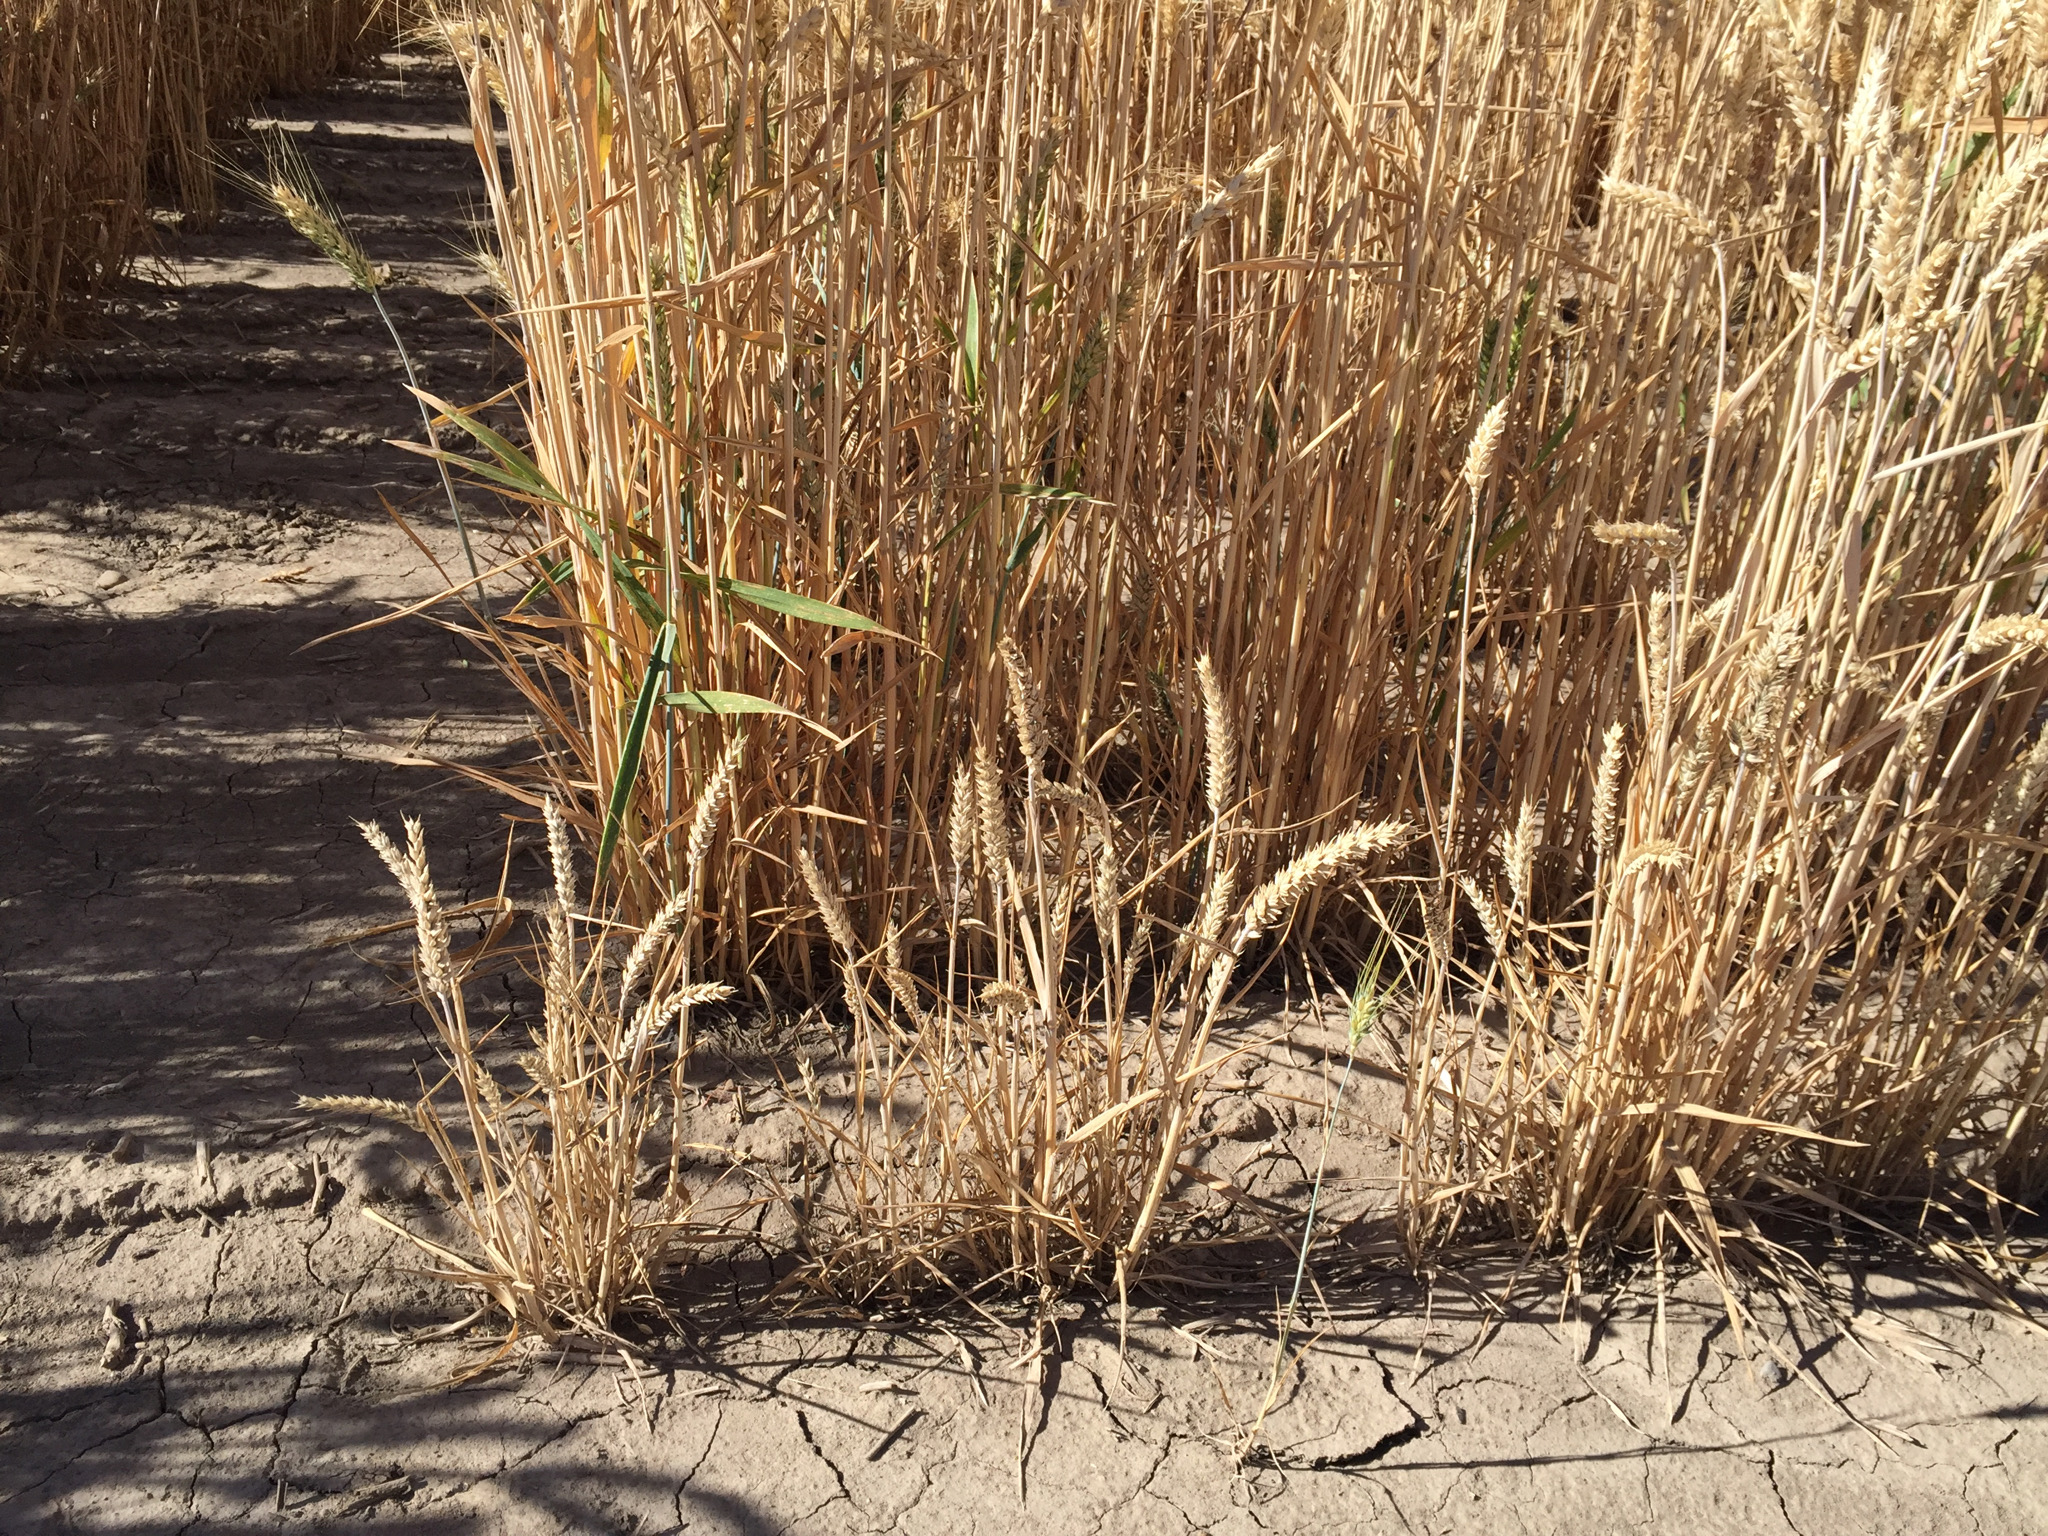 Dwarf bunt typically only impacts winter wheat.